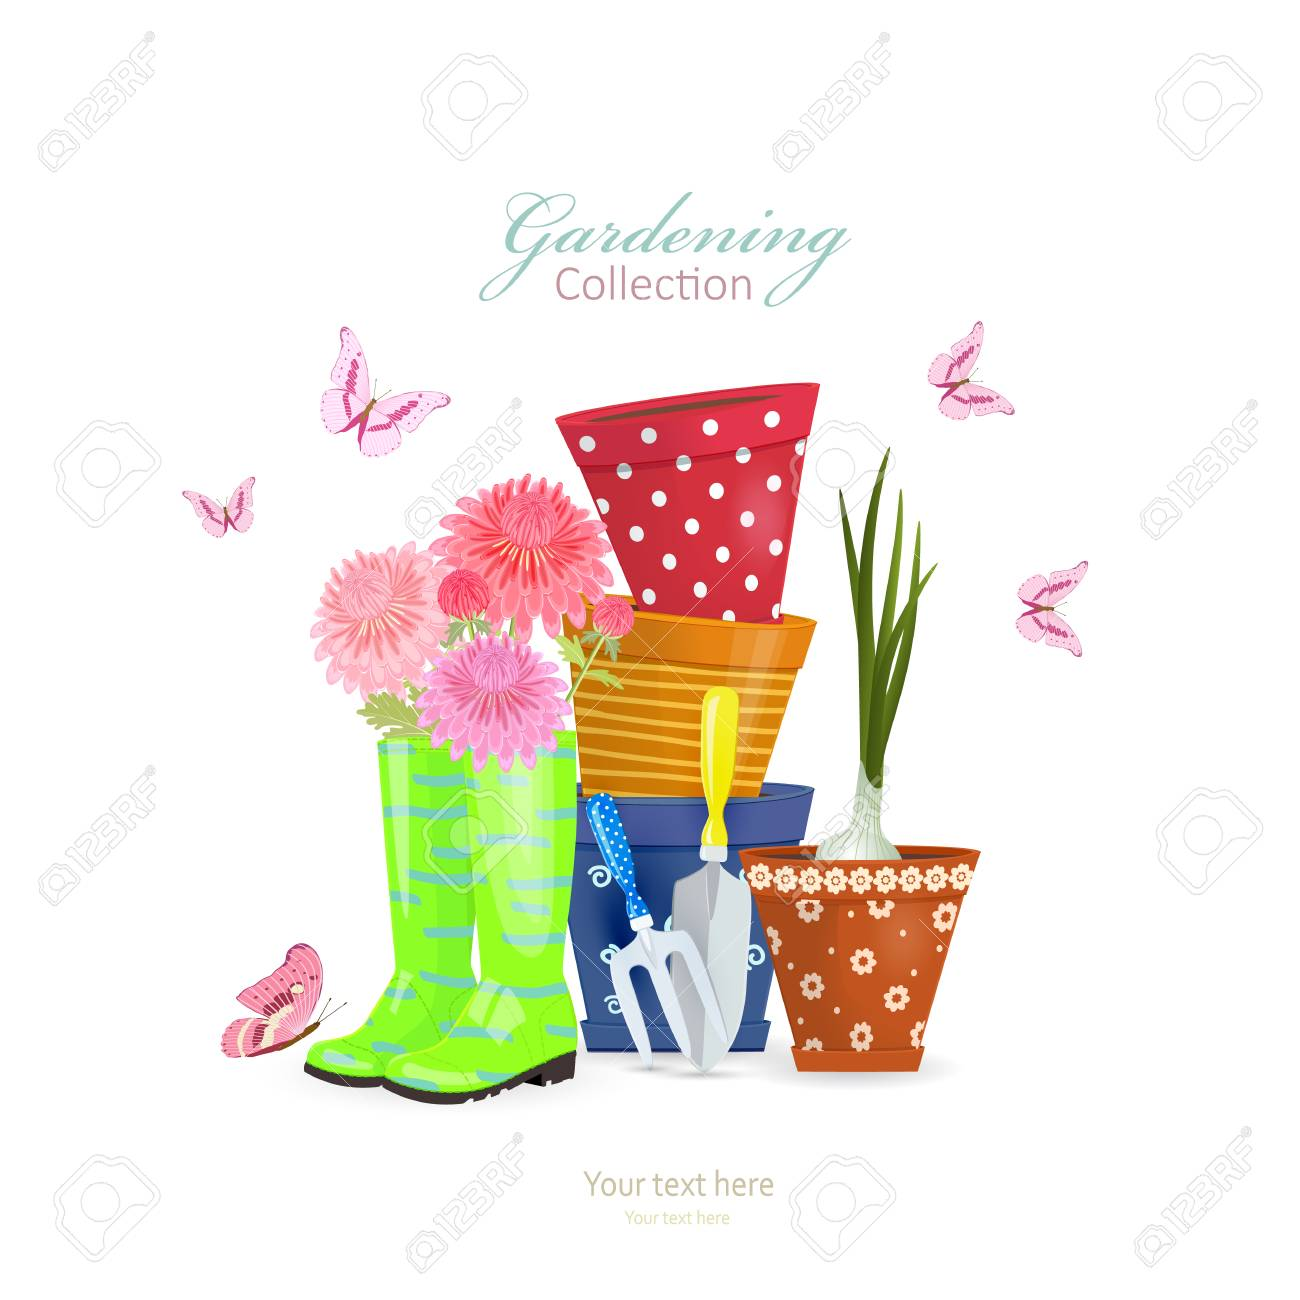 Rustic Gardening Lifestyle With Spring Flowers And Green Onion Planted In Flowerpots On White Background Stock